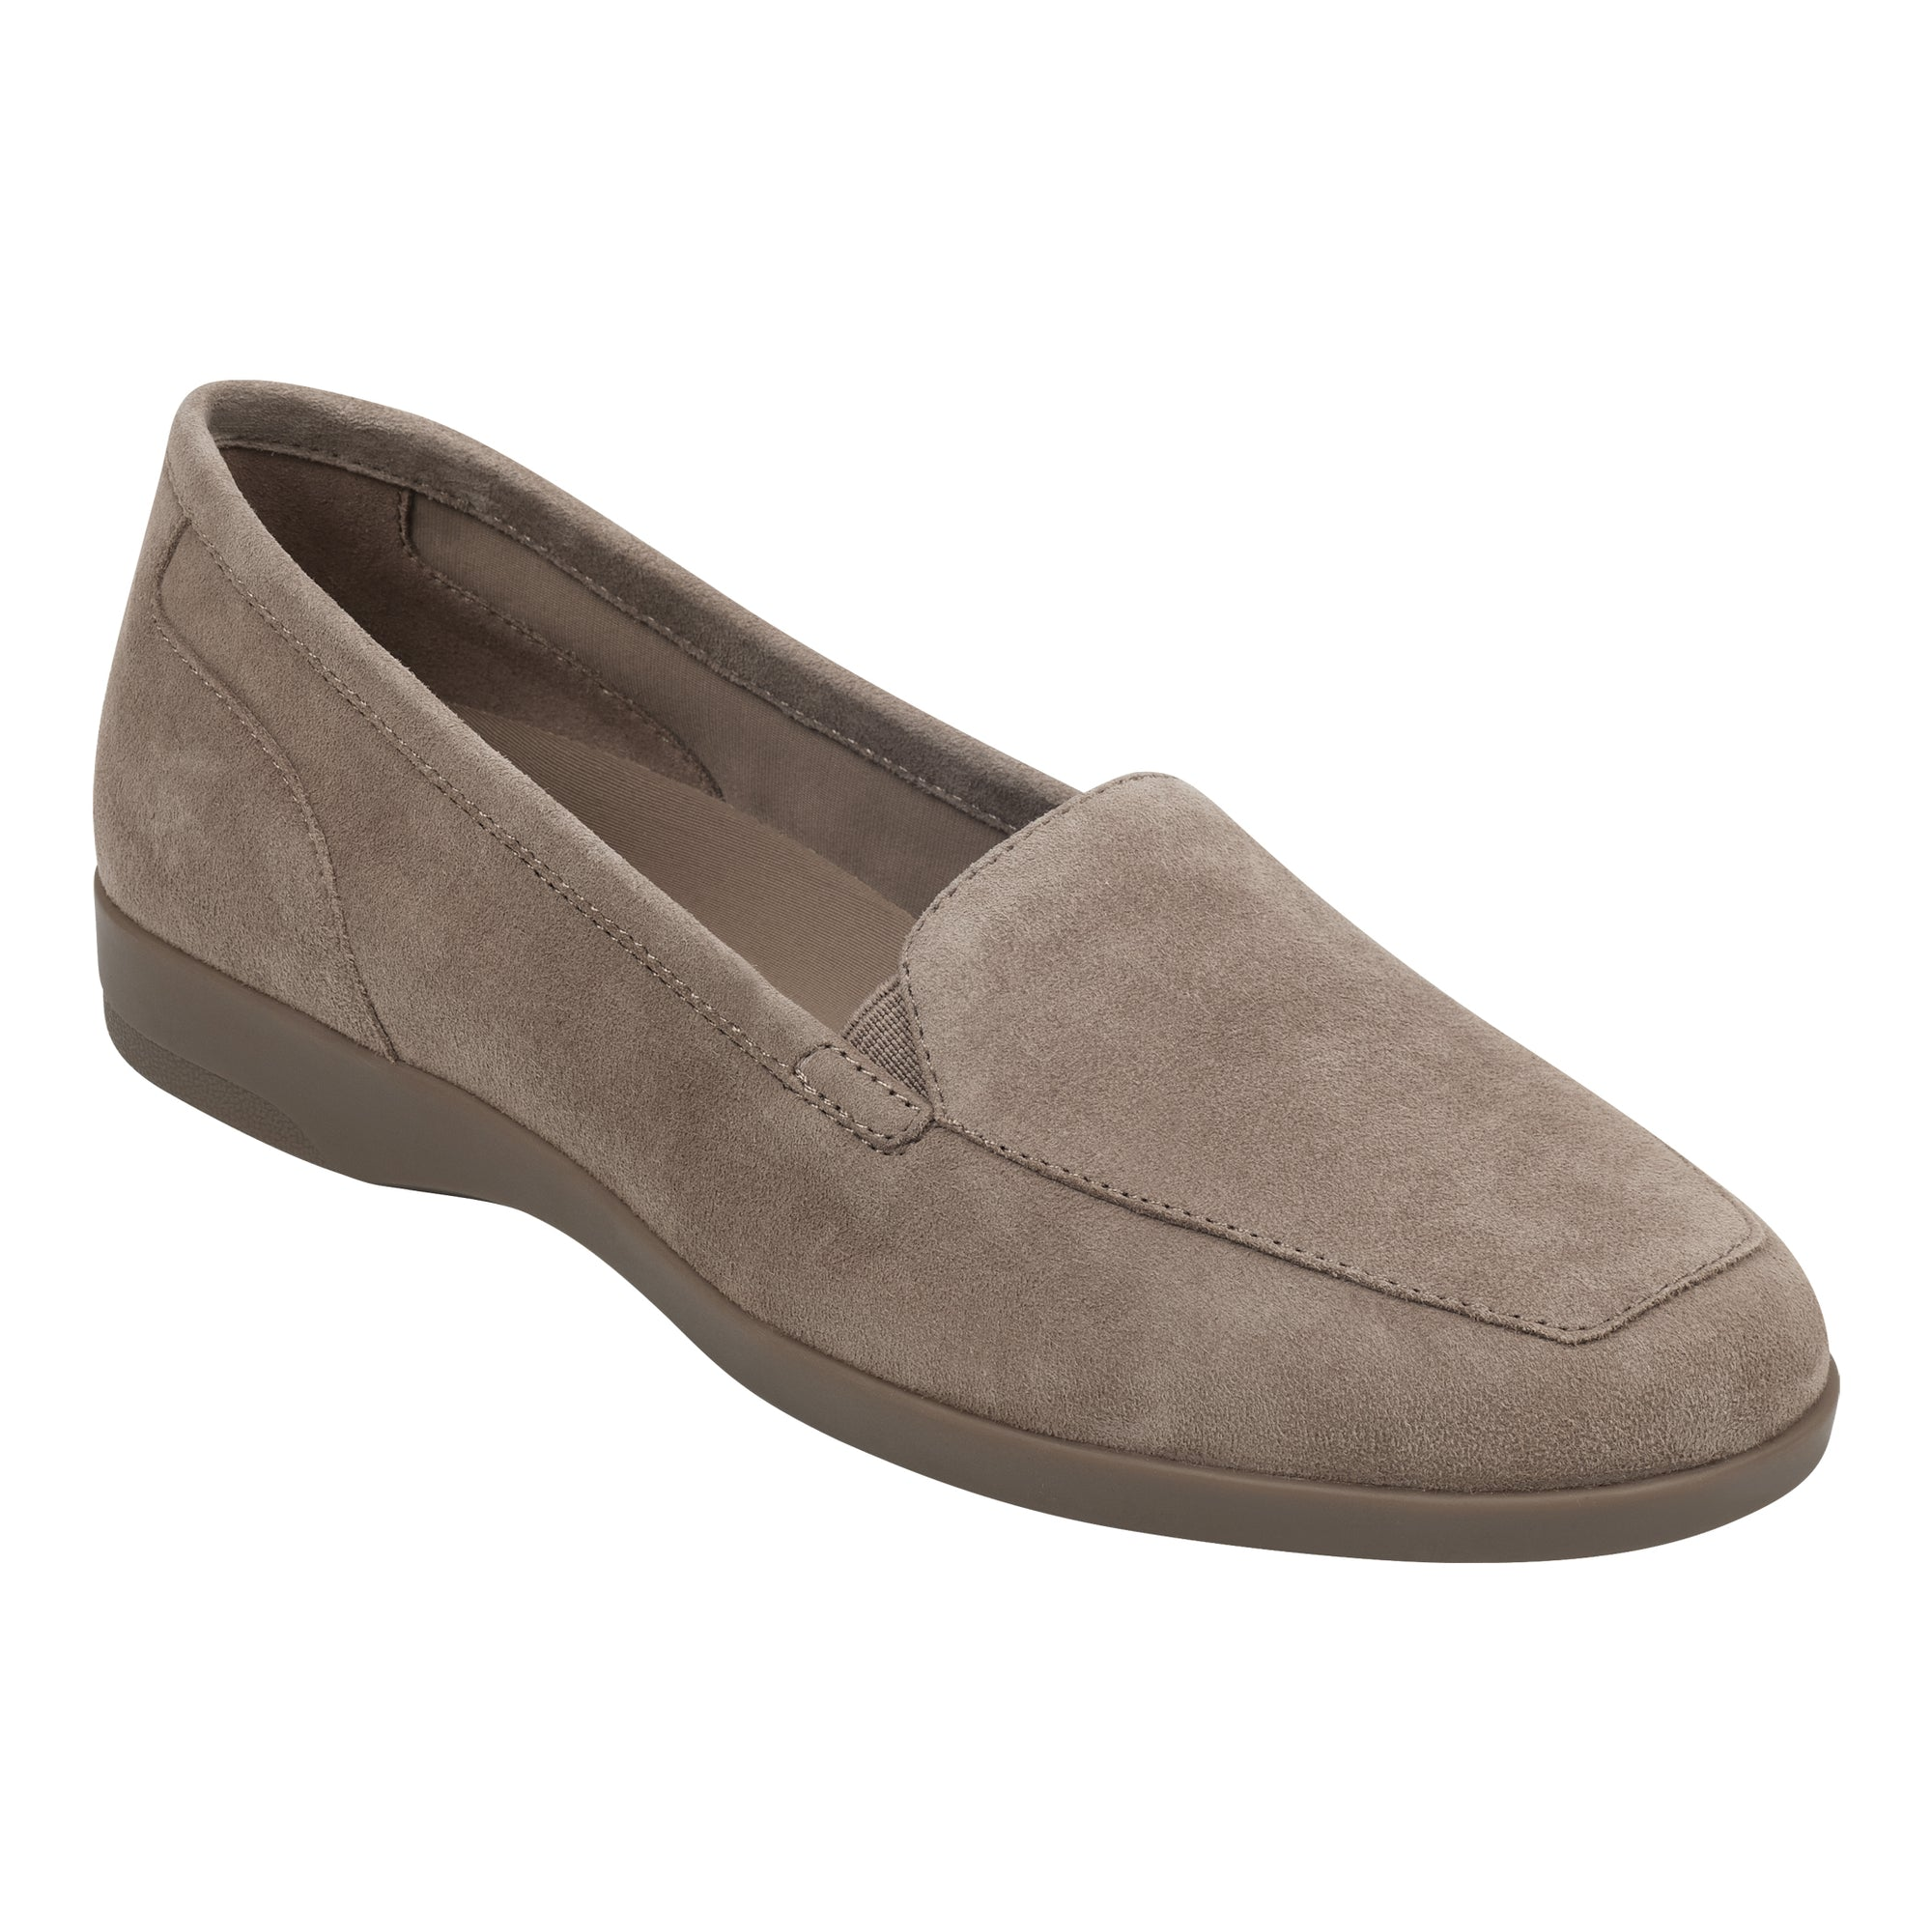 devitt-casual-flats-in-medium-natural-suede